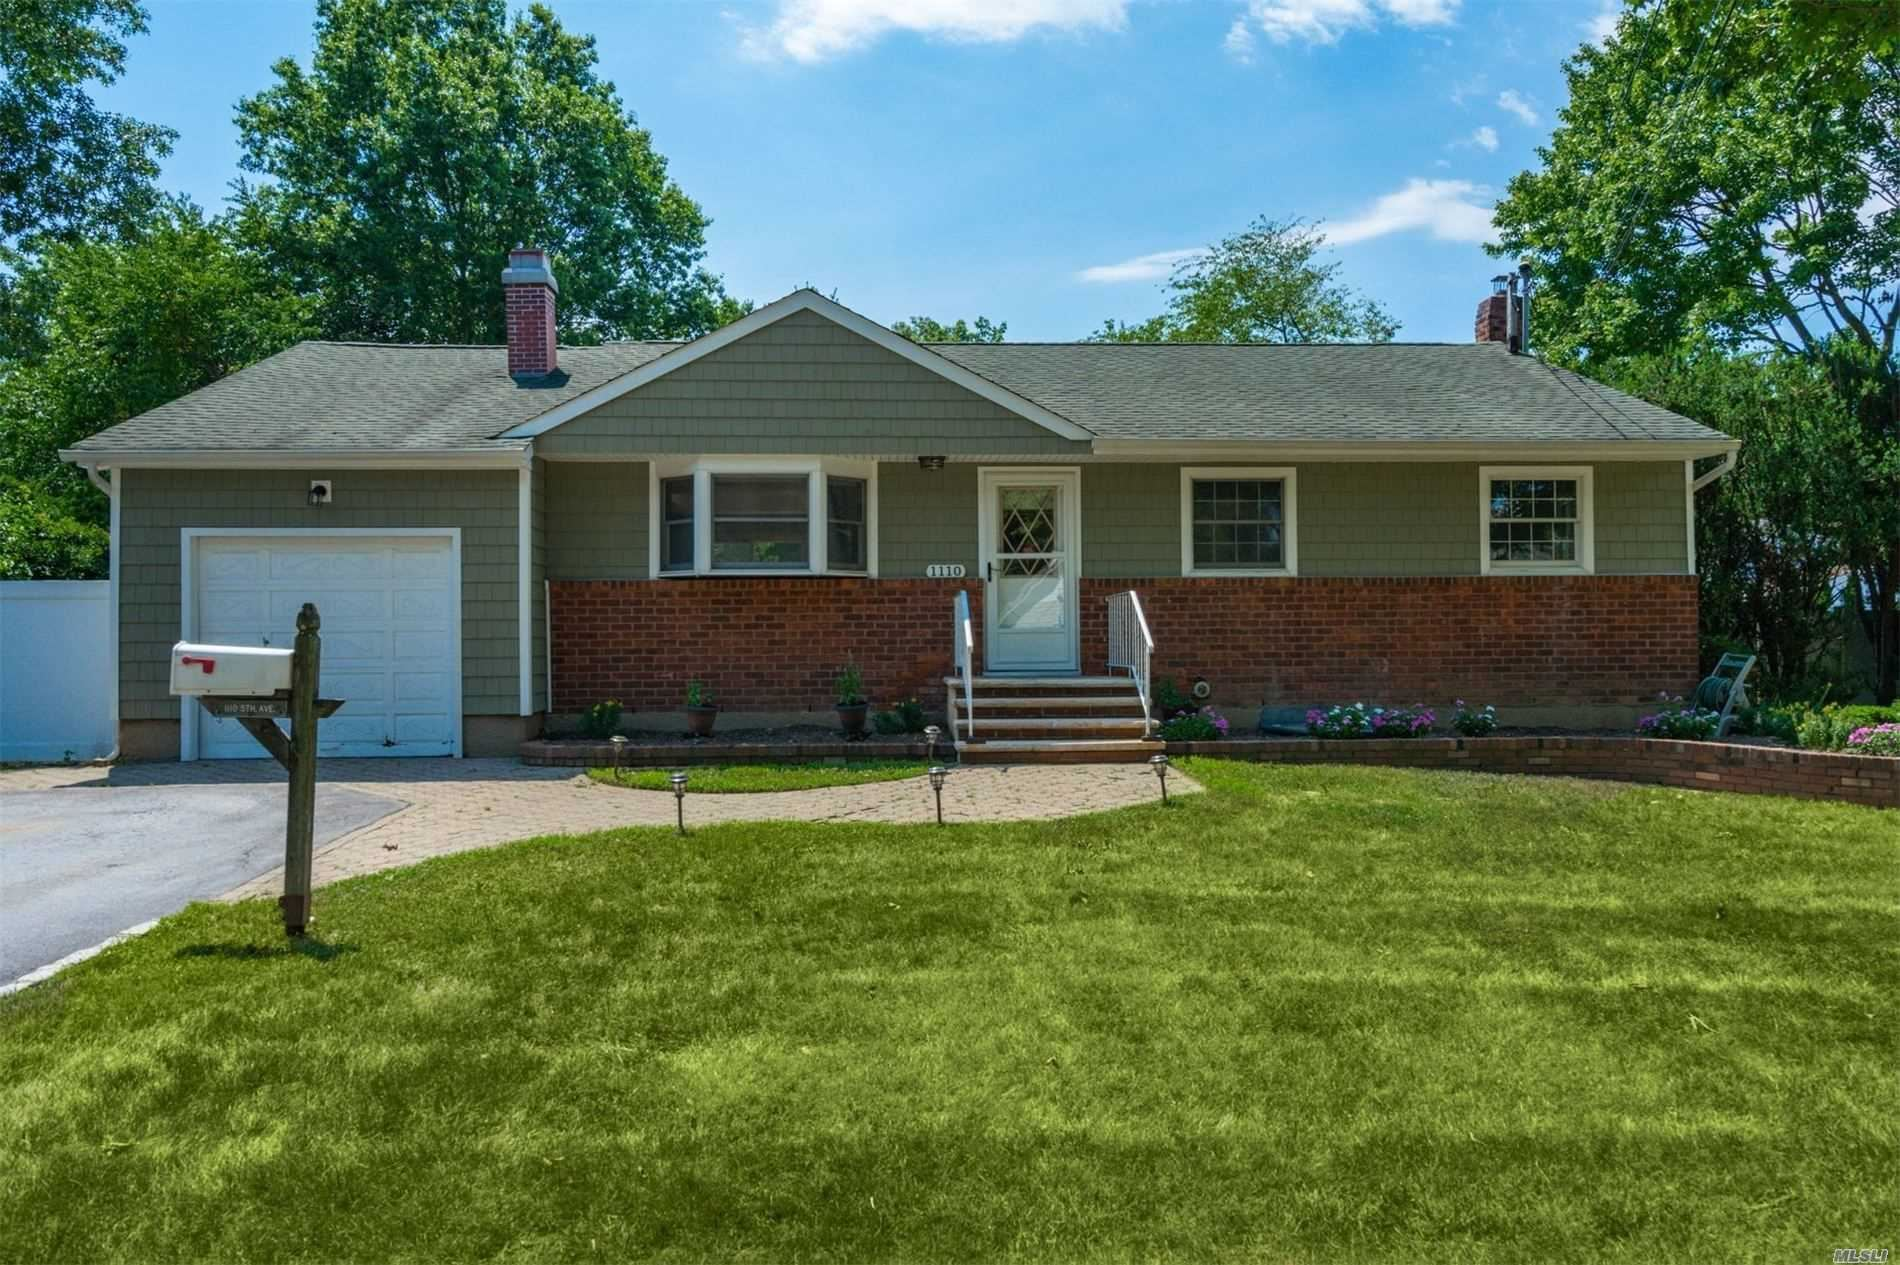 1110 5th Avenue, East Northport, NY 11731 - MLS#: 3237874